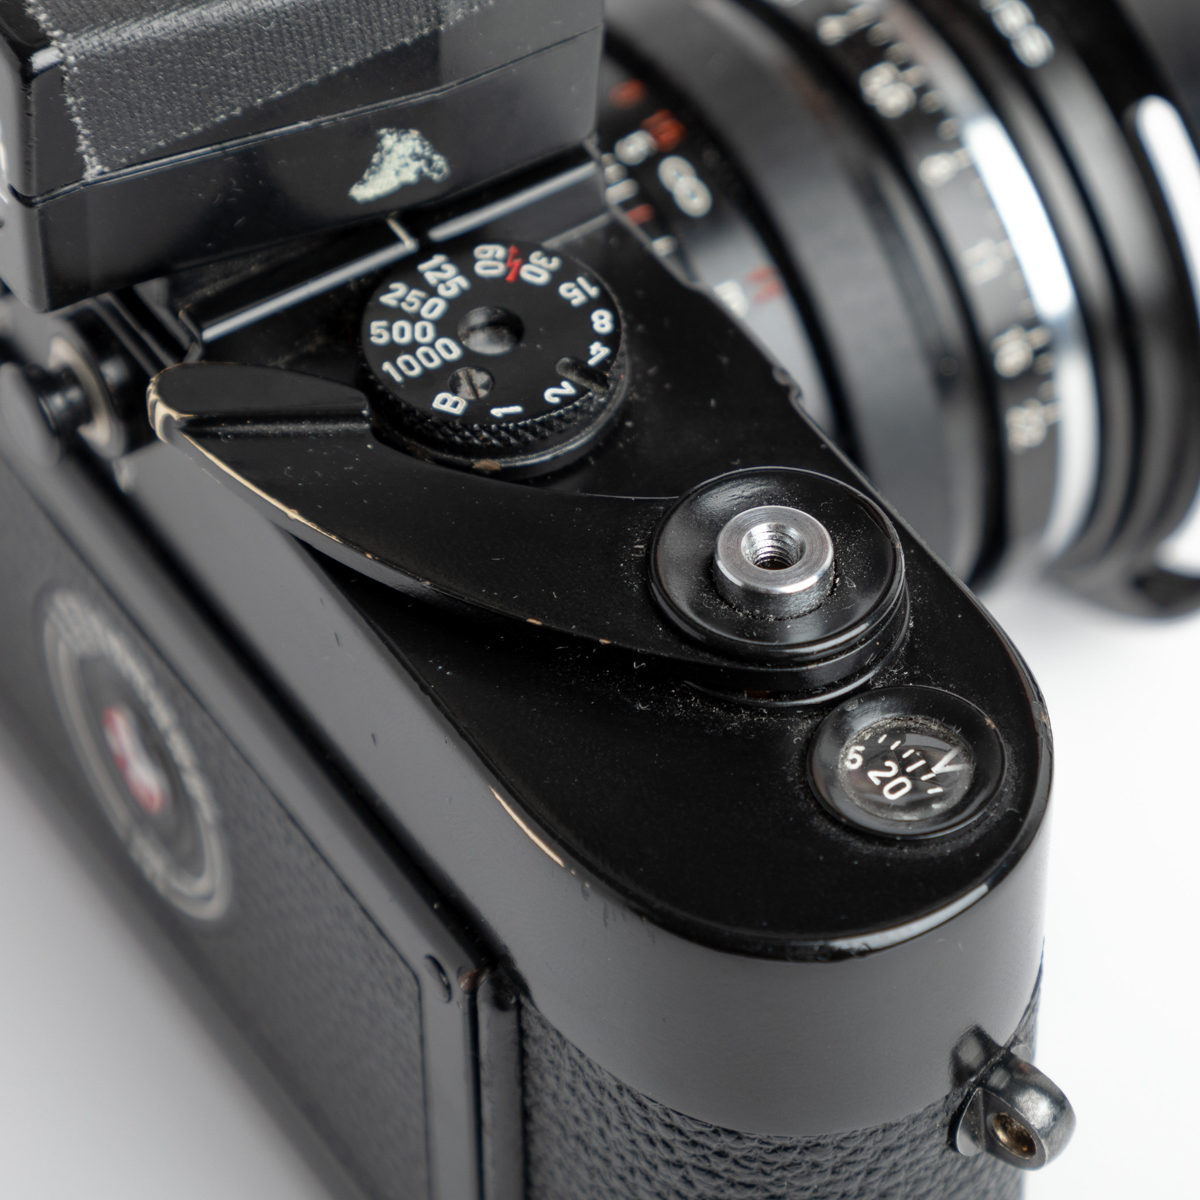 Leica M3 - Top plate detail